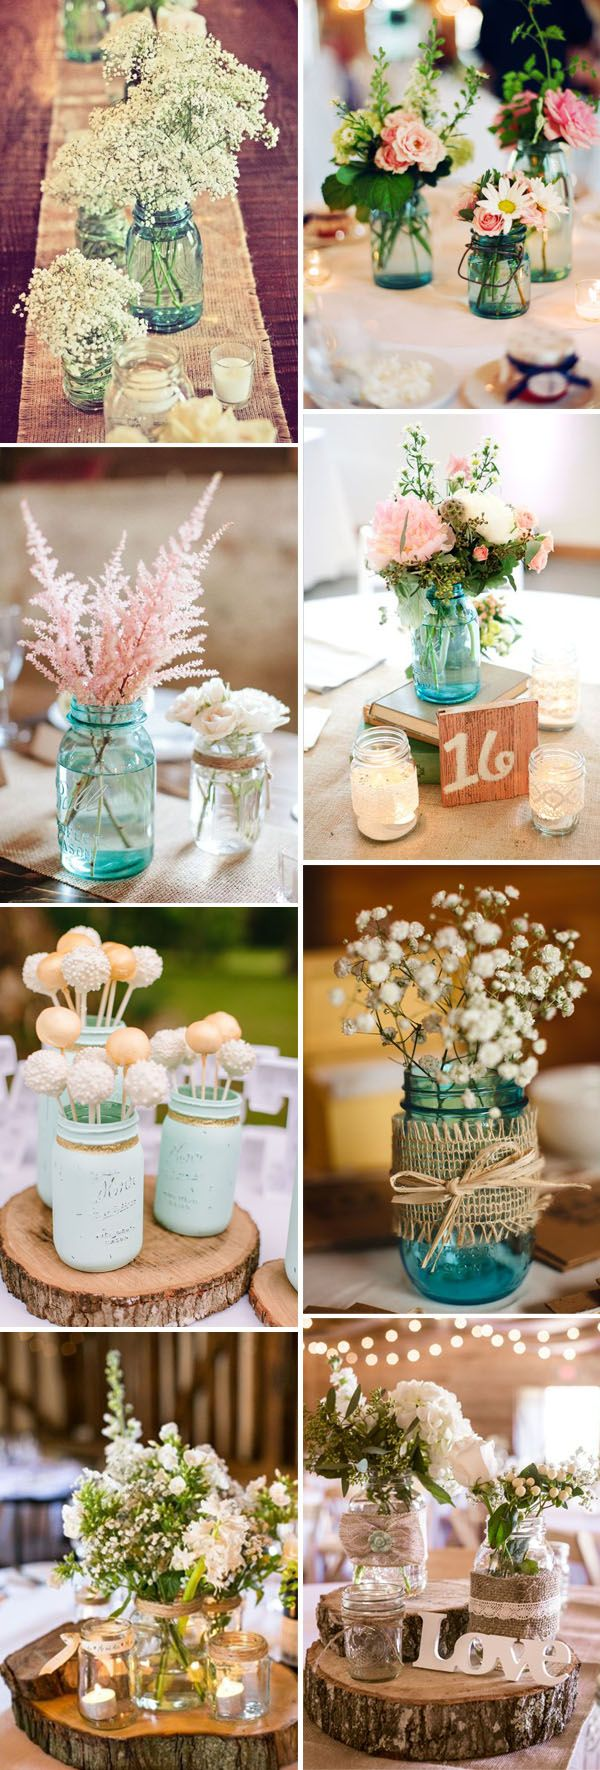 best wedding images on pinterest wedding ideas flower